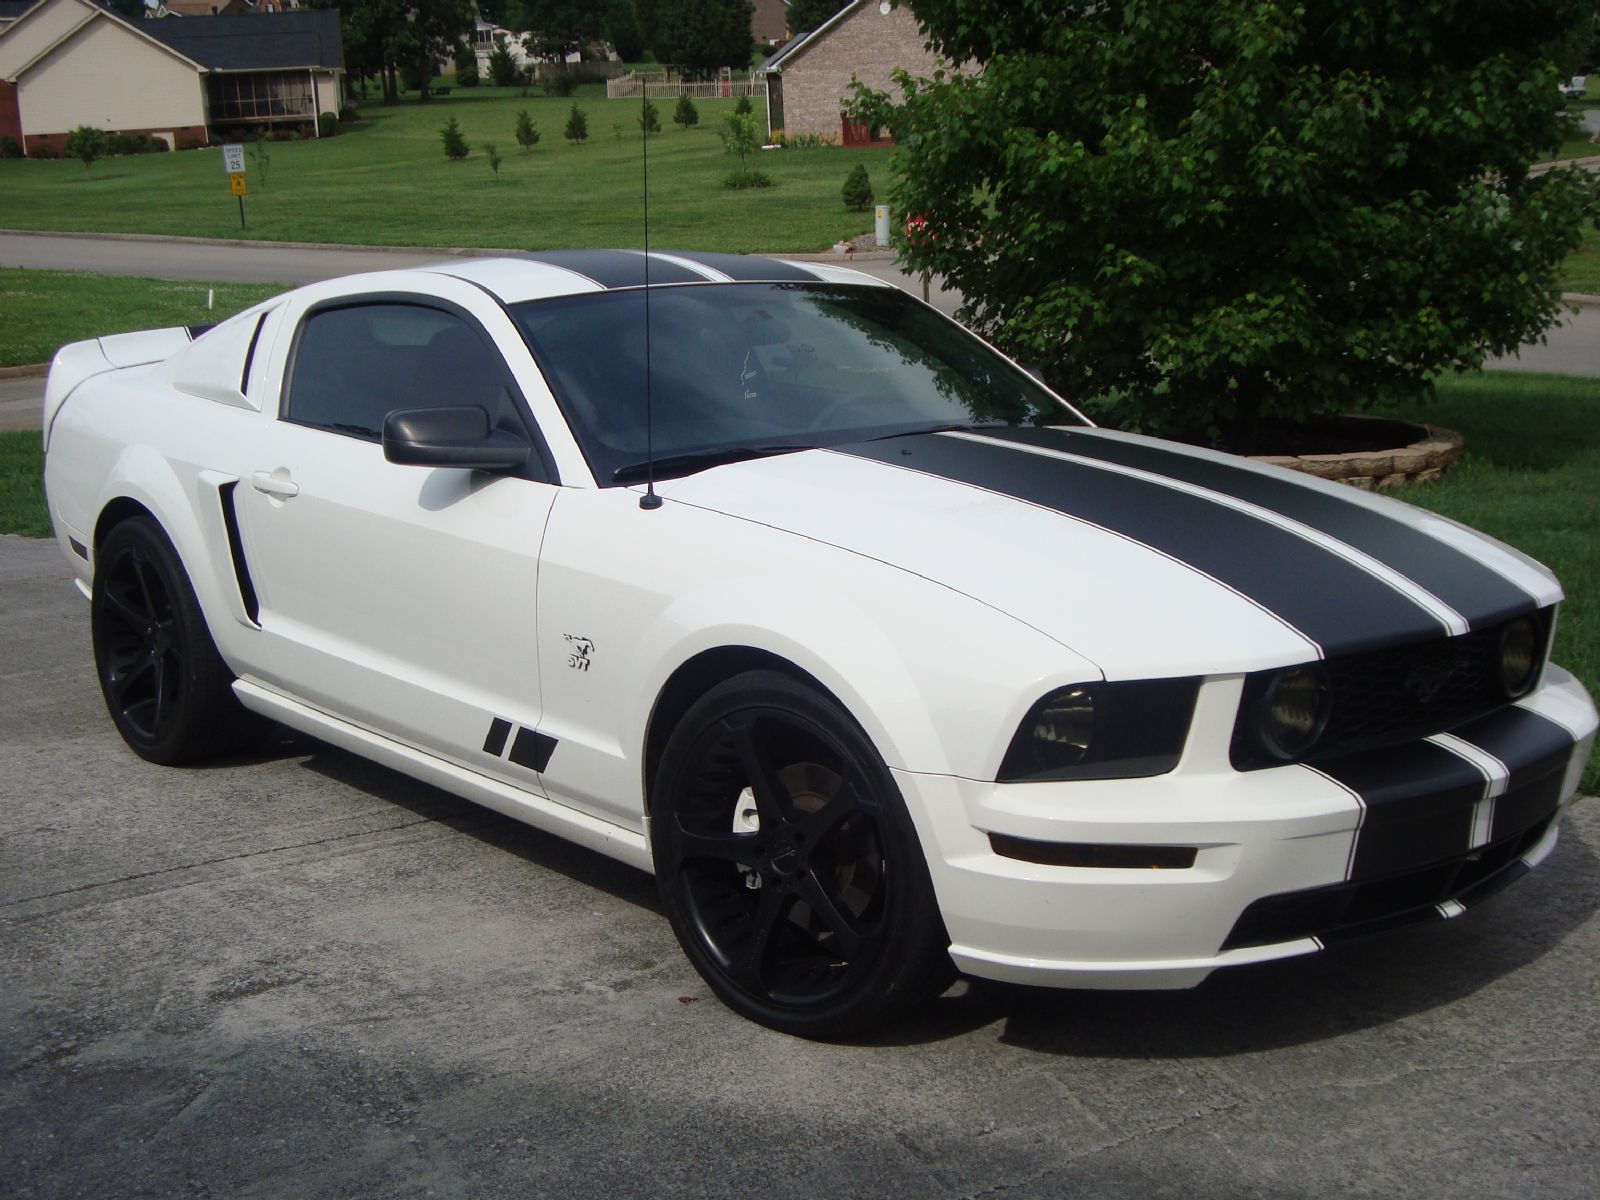 2009 Ford S197 Pony [Mustang] GT For Sale | Seymour Victoria